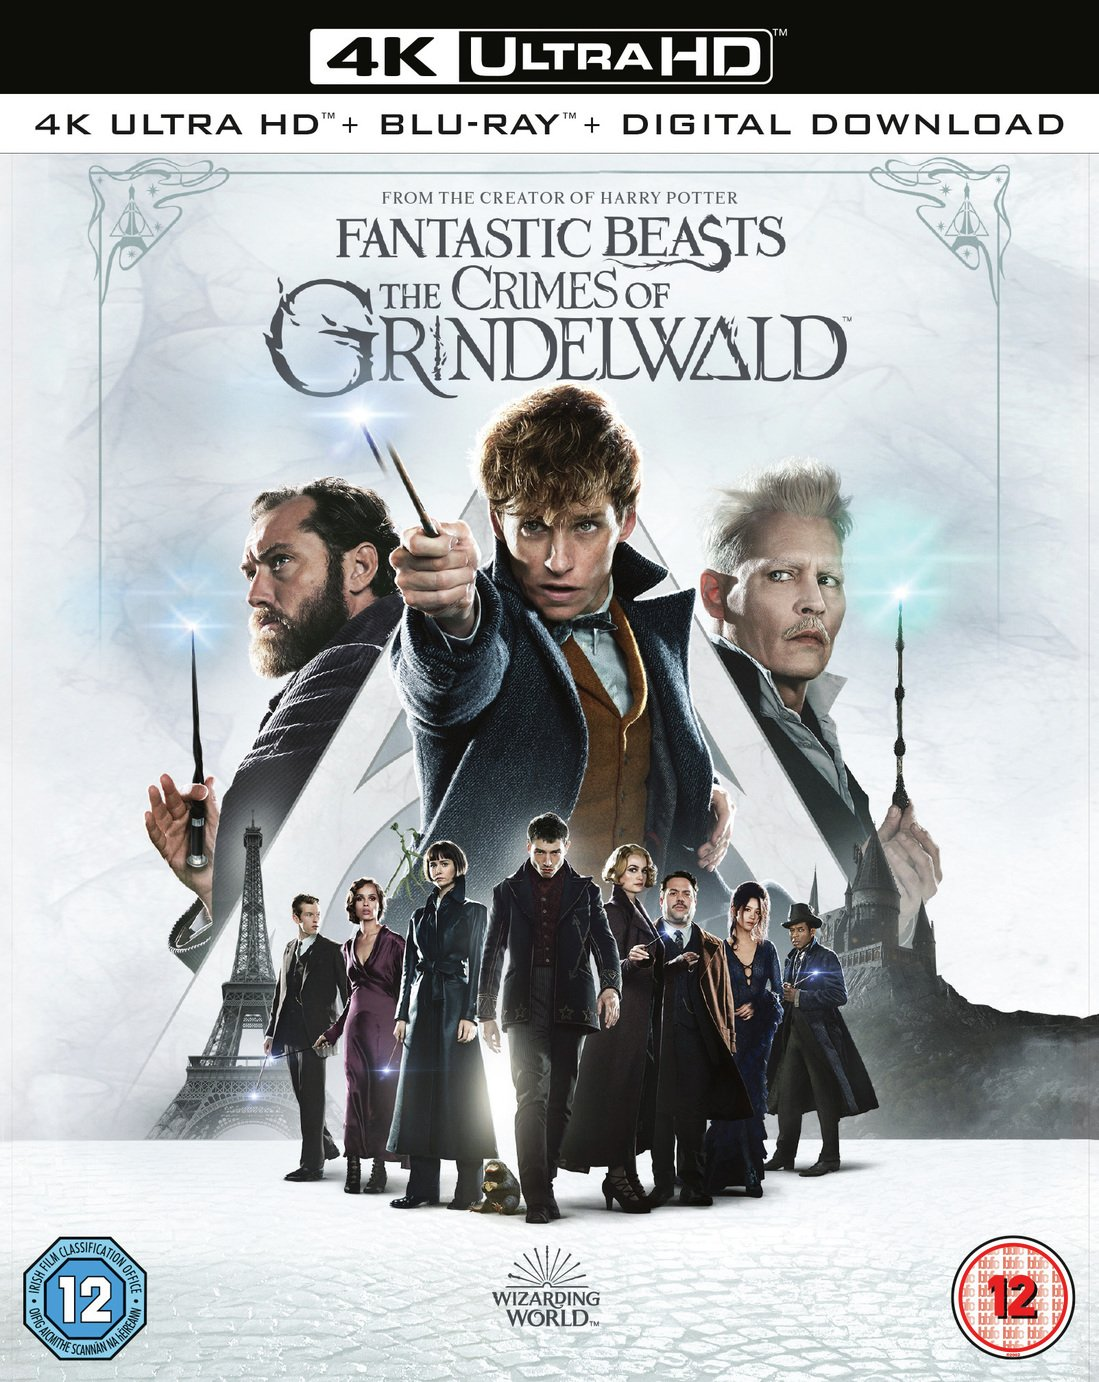 Fantastic Beasts: The Crimes of Grindelwald 4K UHD Blu-Ray review